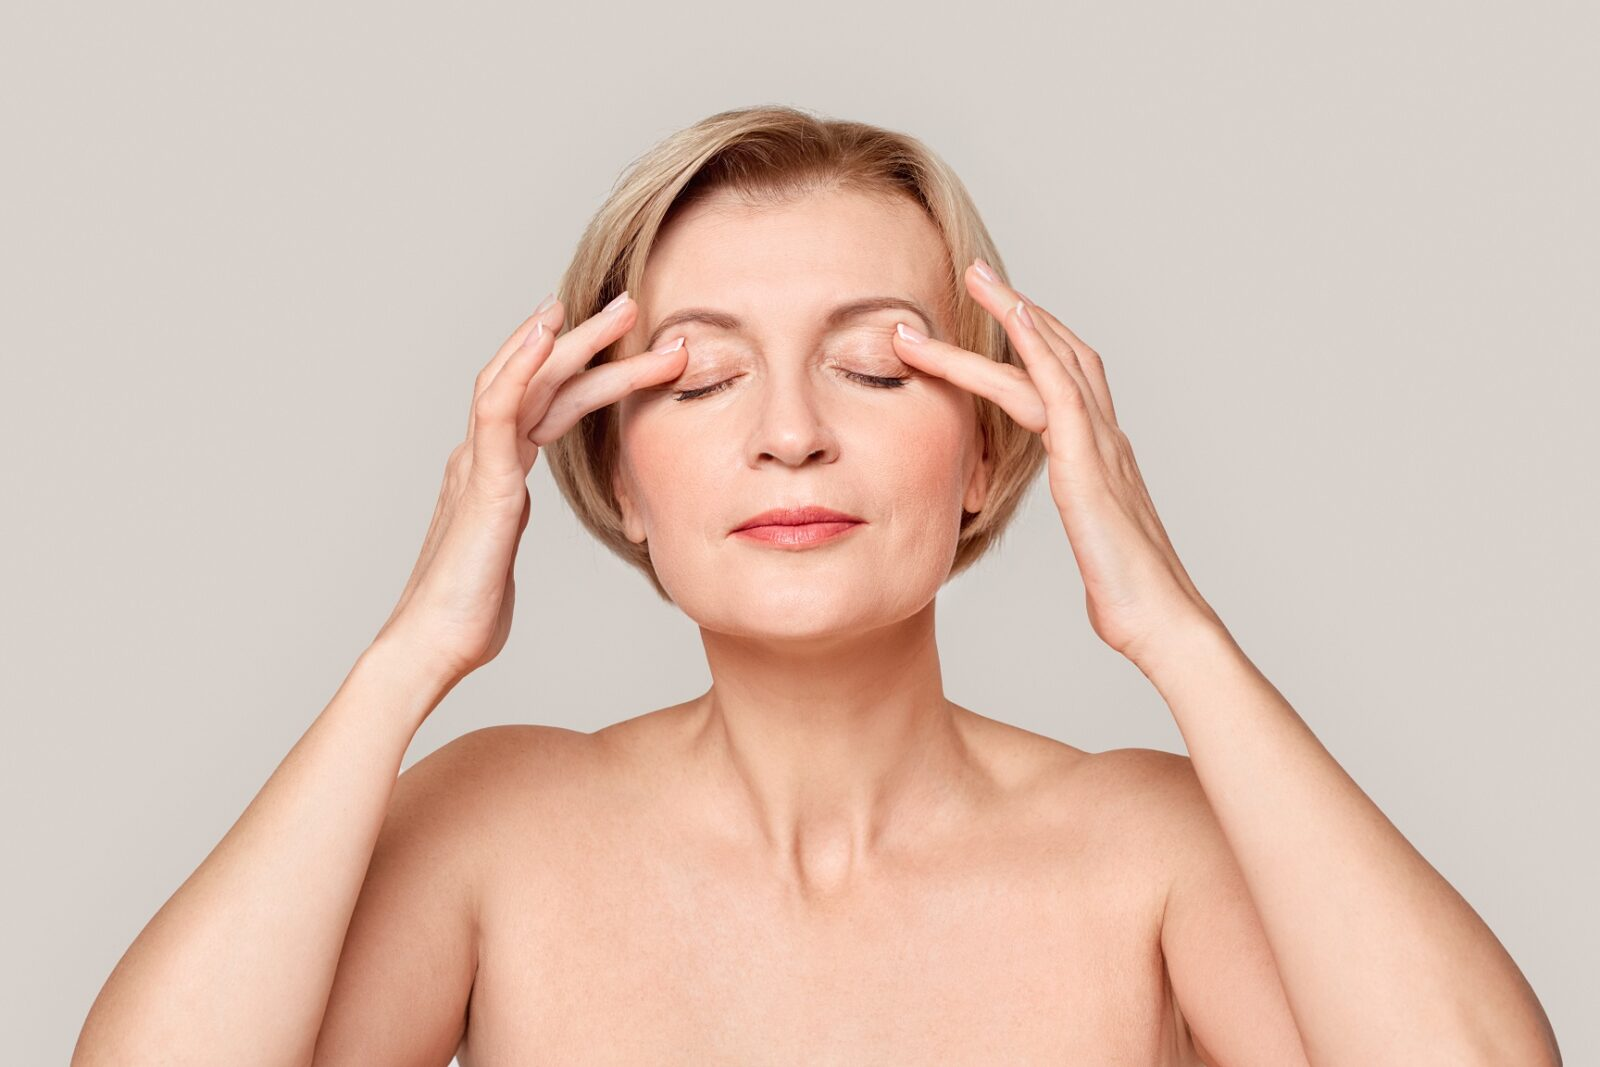 Why You Should Consider Getting Cosmetic Eyelid Surgery?